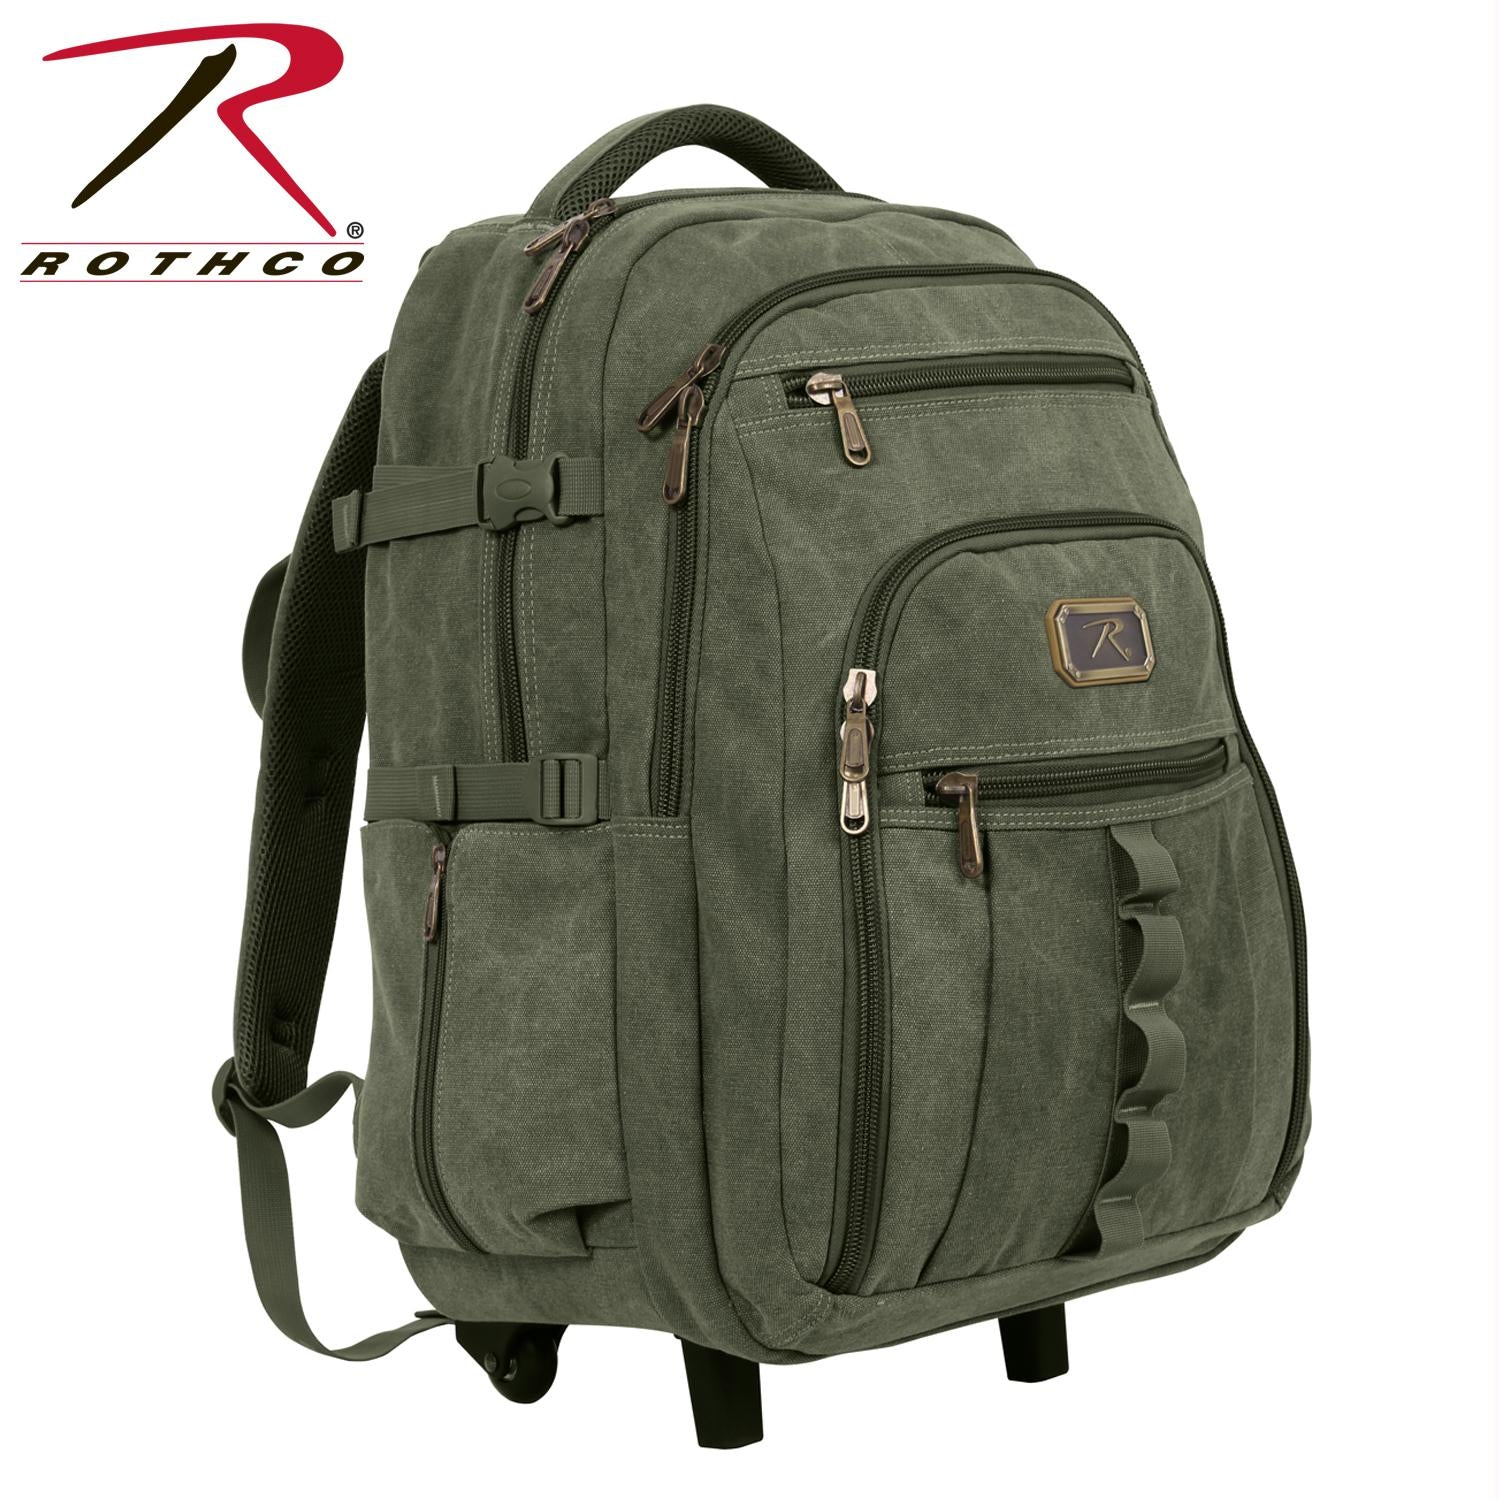 Rothco Rolling Canvas Backpack - Olive Drab